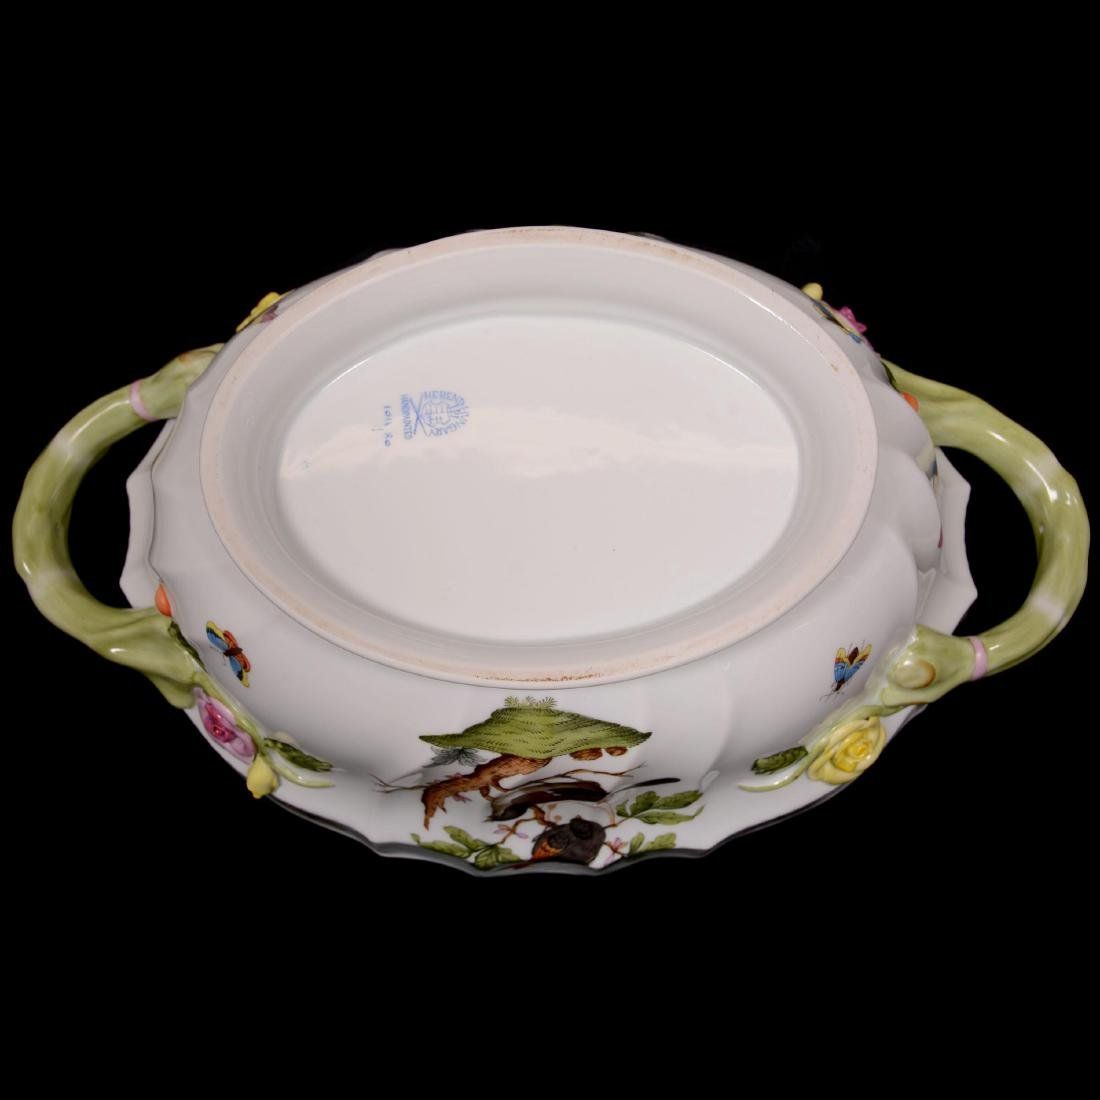 Herend Hungary Porcelain Hand Painted Covered Tureen - 3